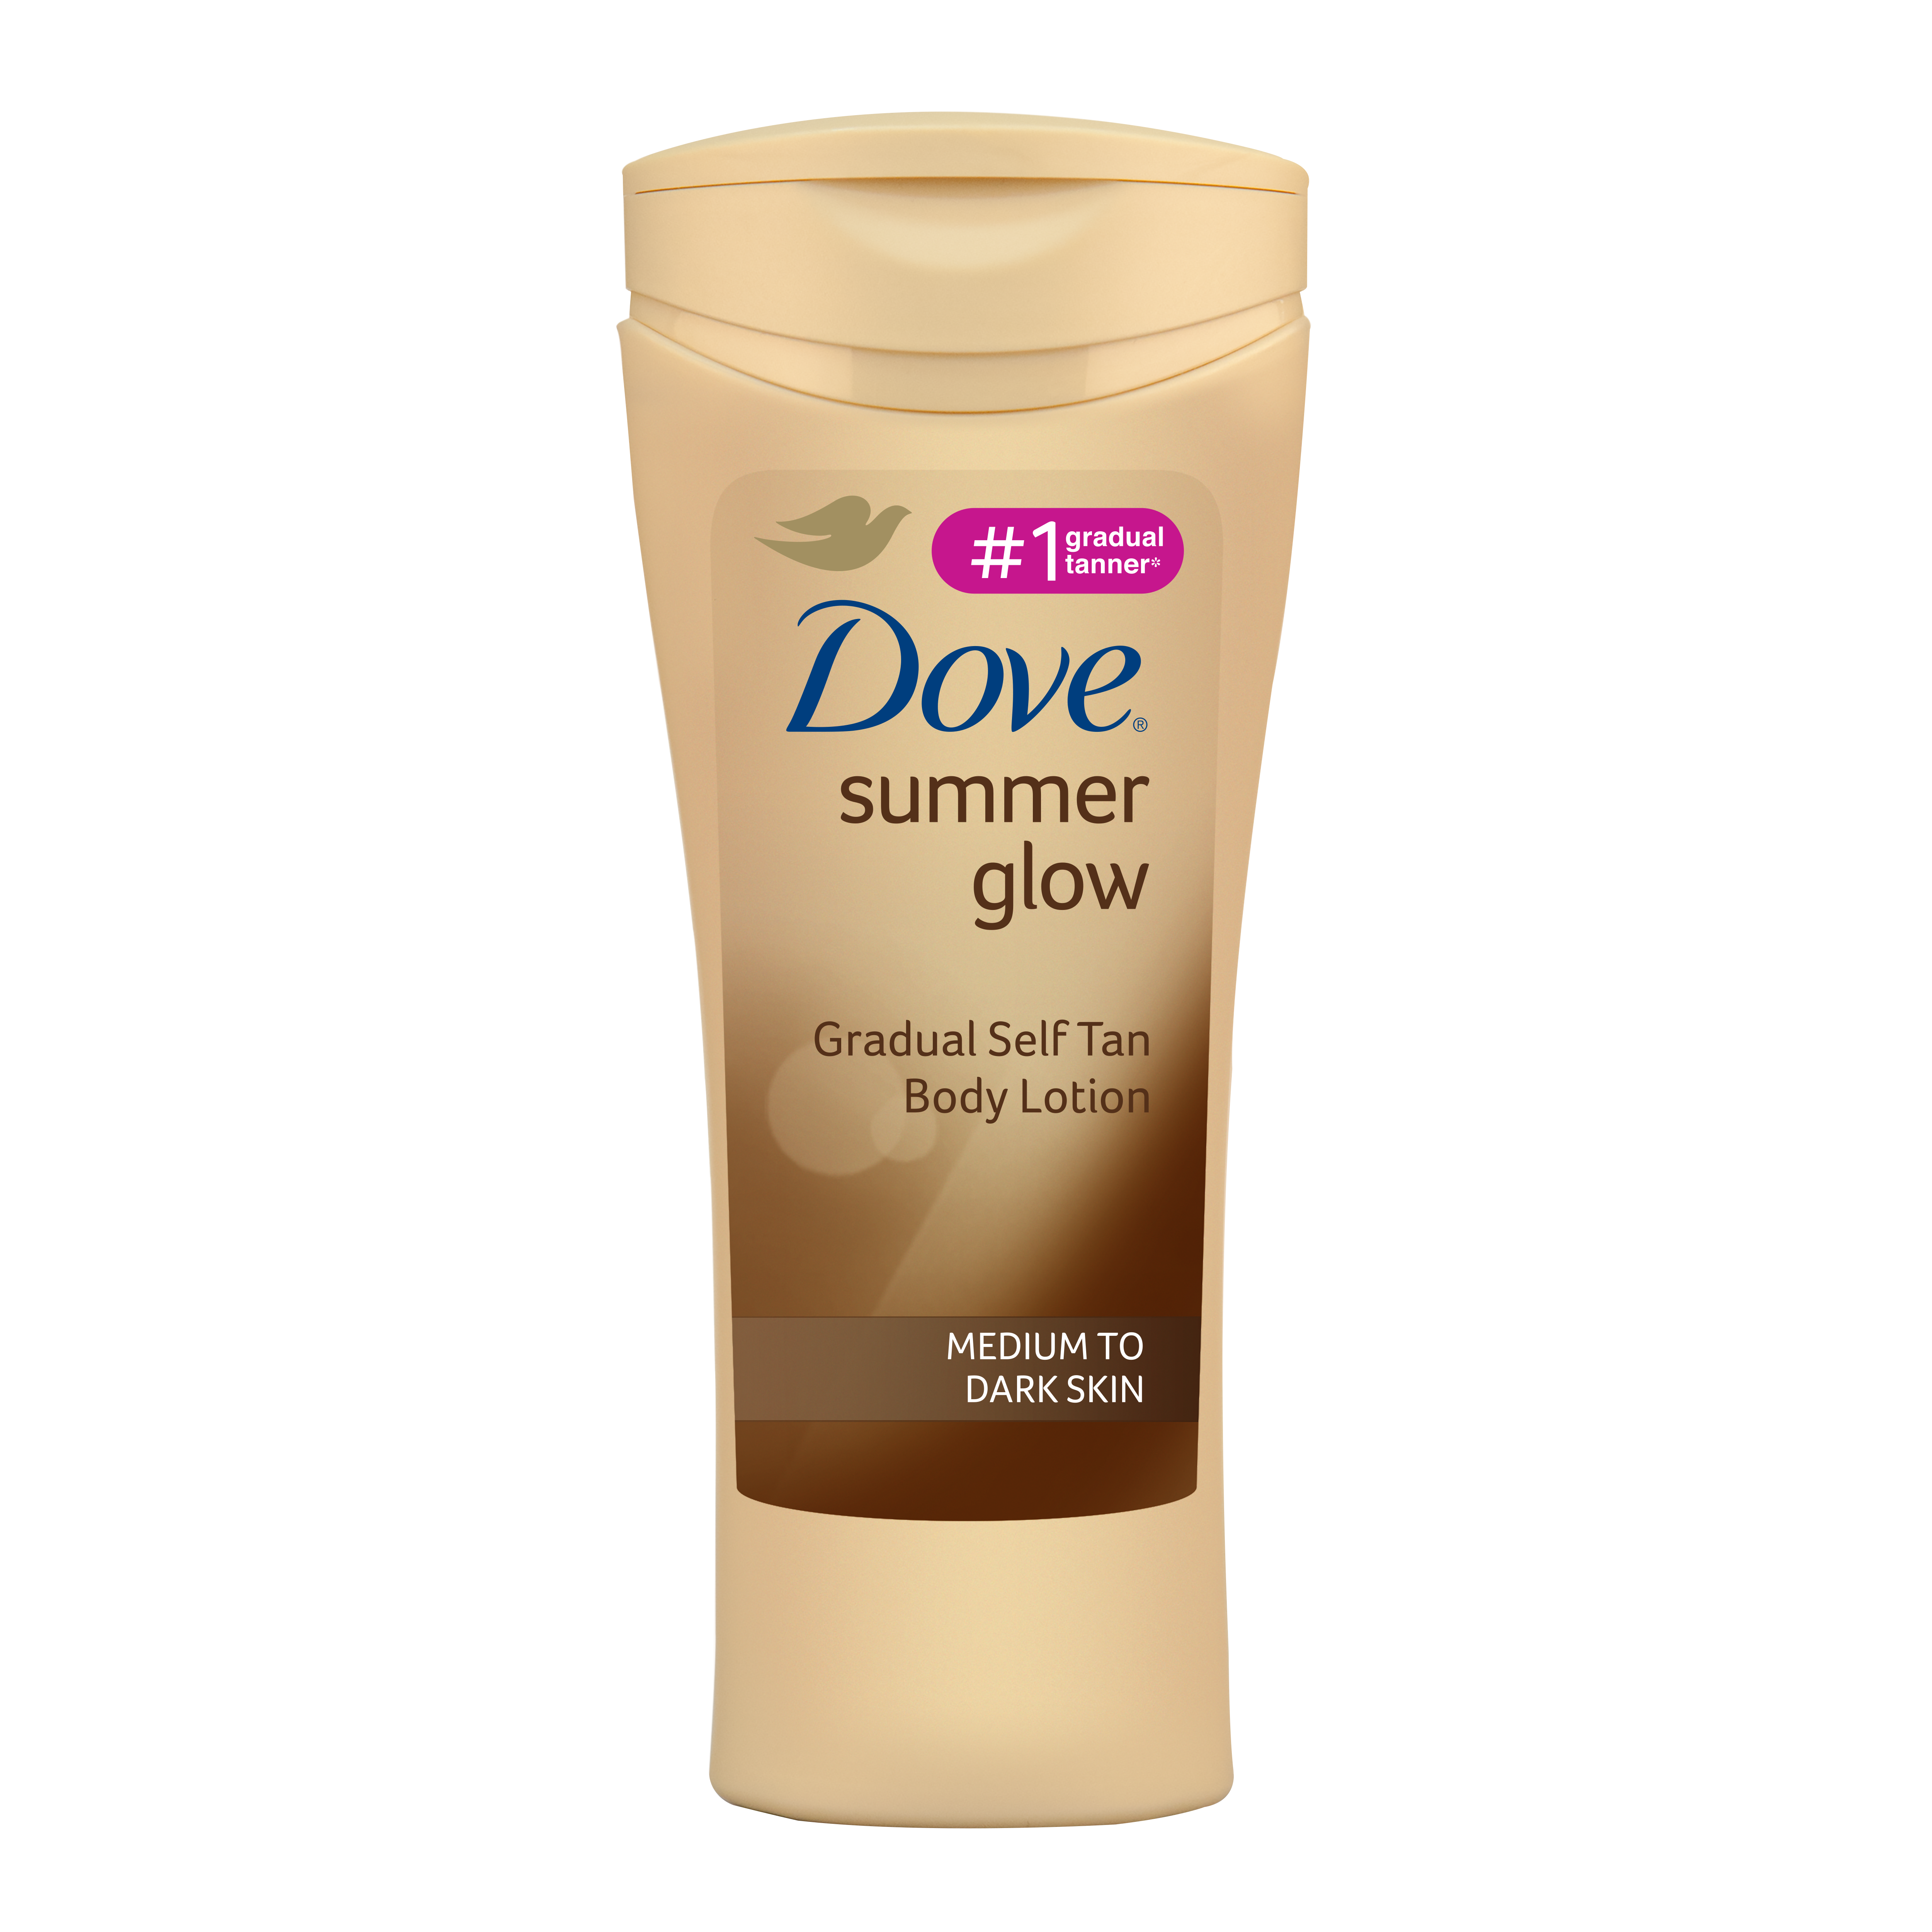 Dove Summer Glow Gradual Self Tan Body Lotion Medium To Dark